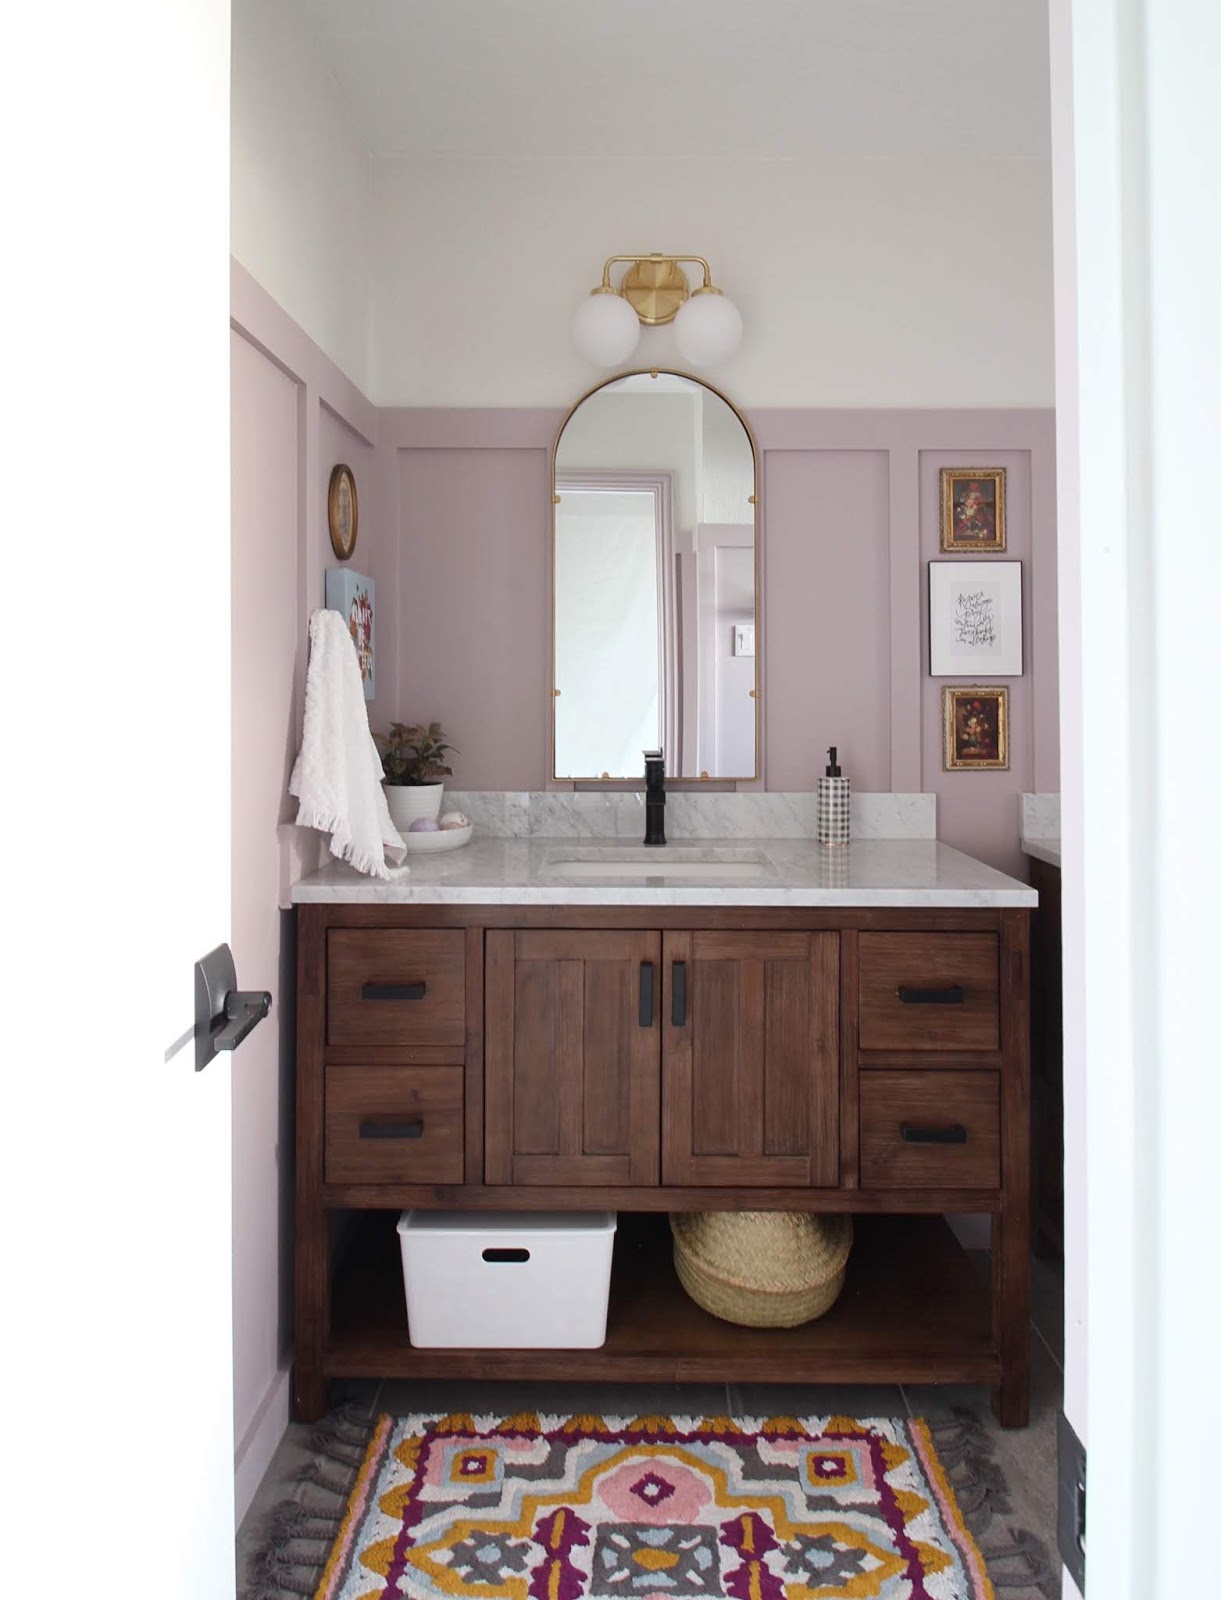 Primp and Pamper traditional, sophisticated girl's bathroom reveal | House Homemade